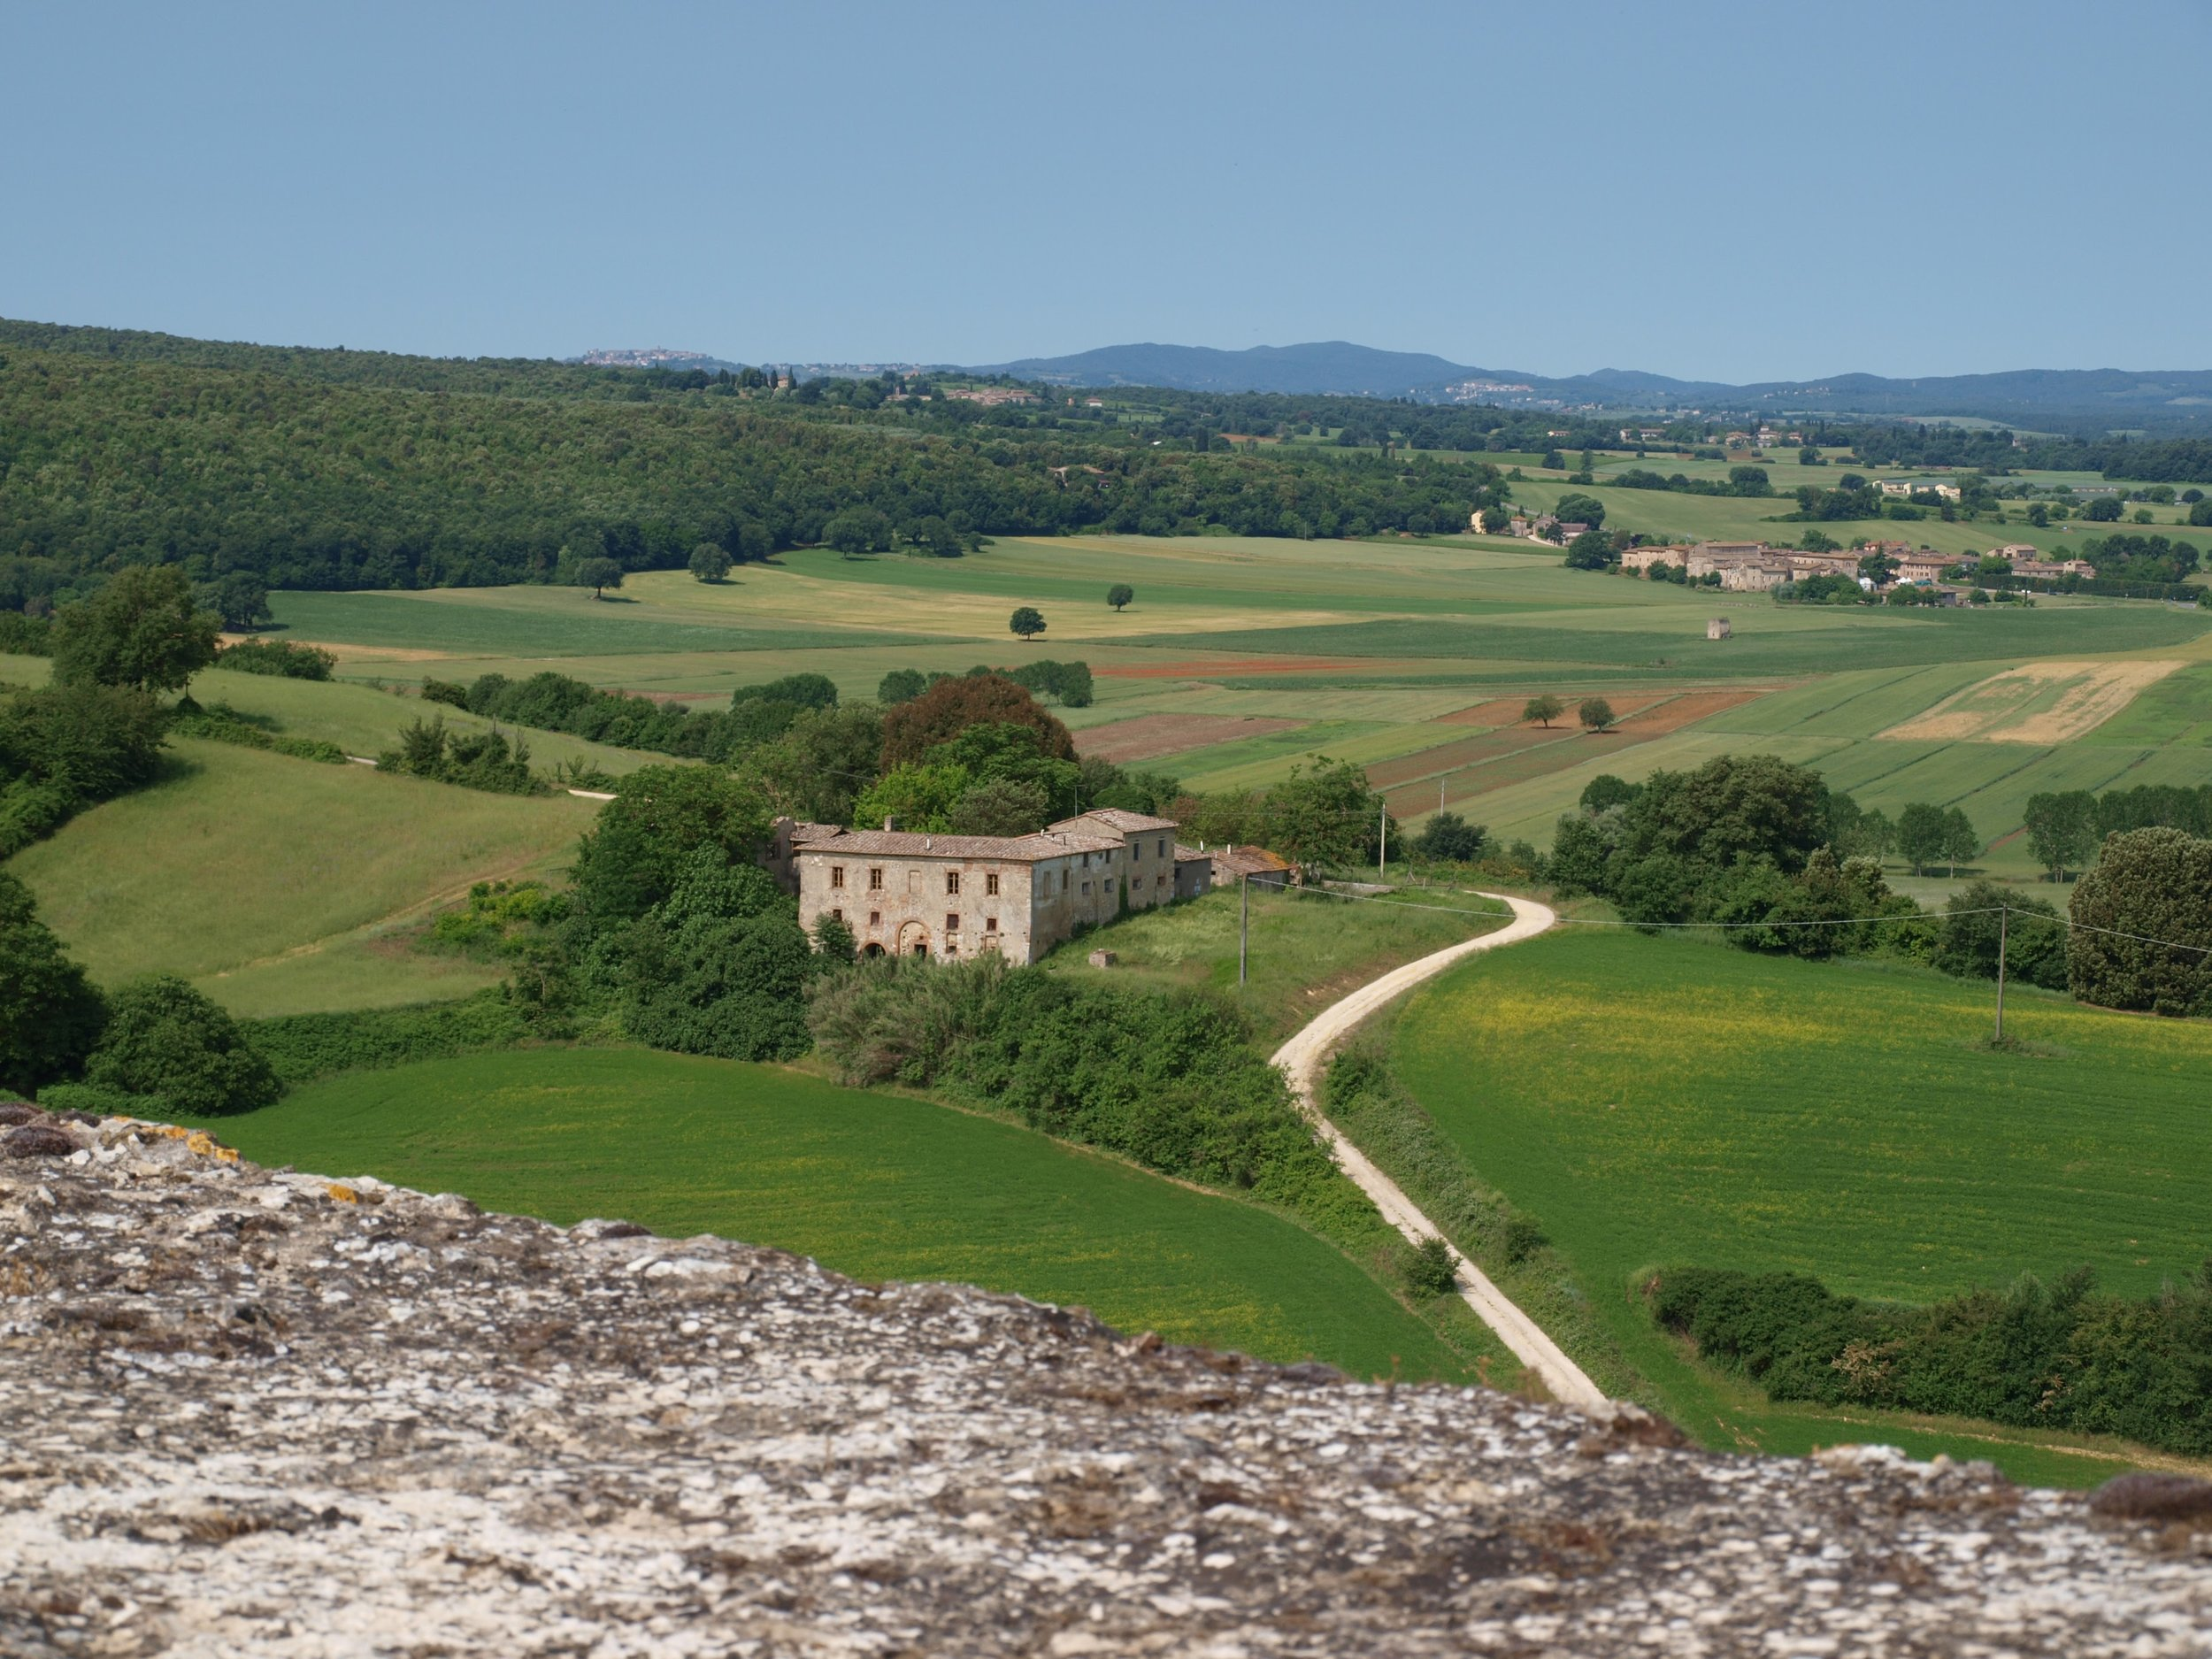 The view from the walls of Monteriggioni